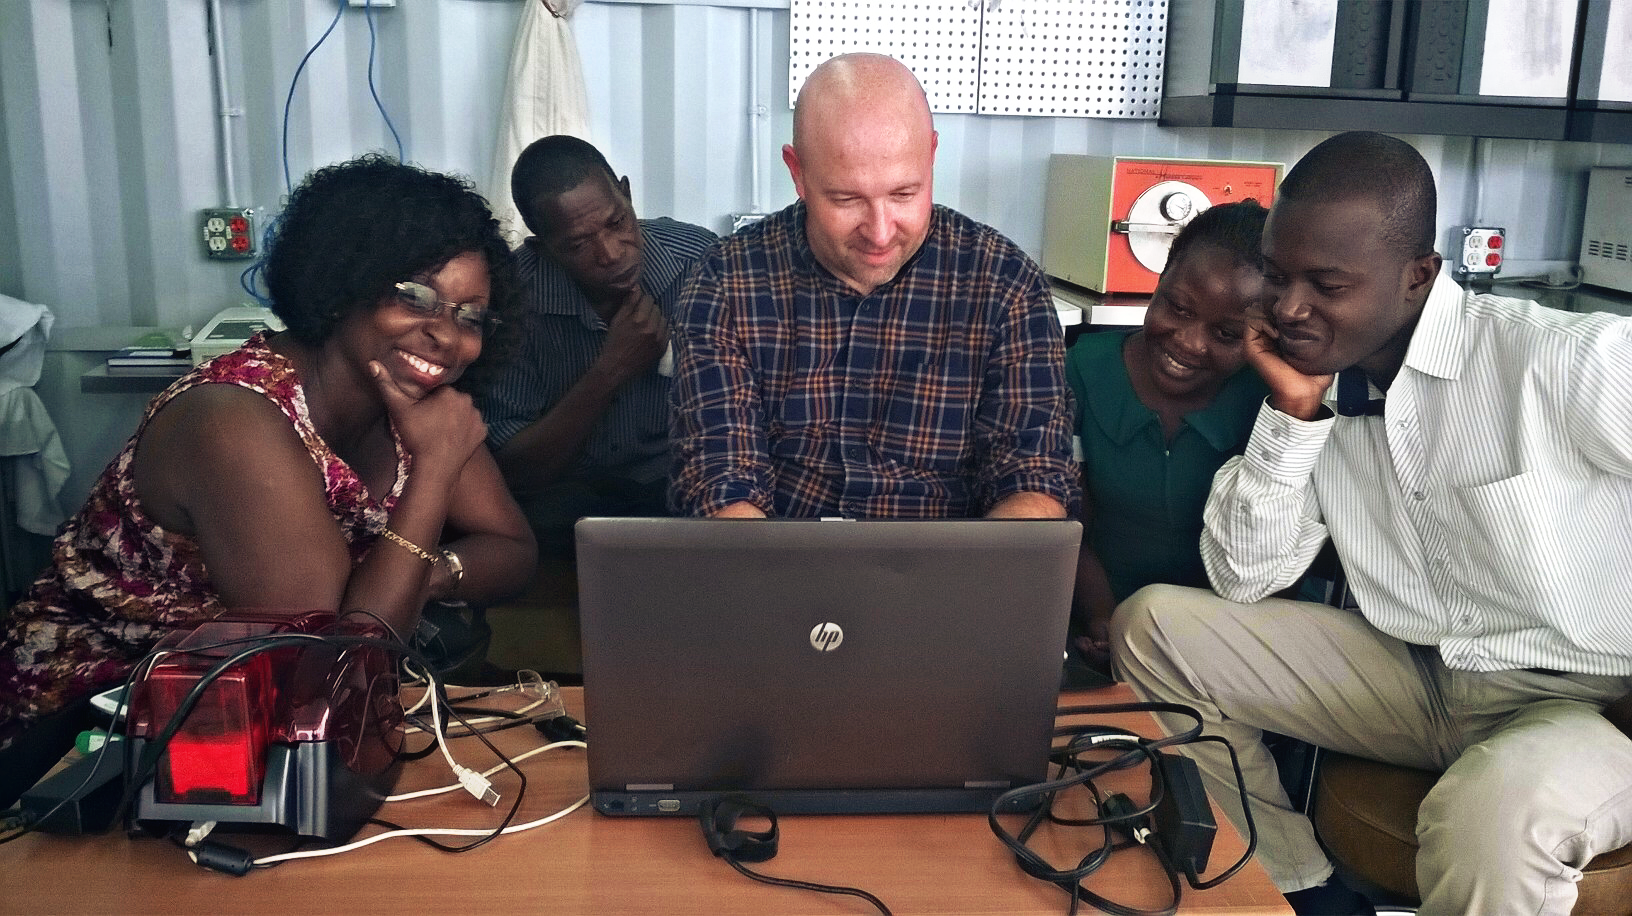 PMMI trains Ghanaian medical professionals on EMR software.